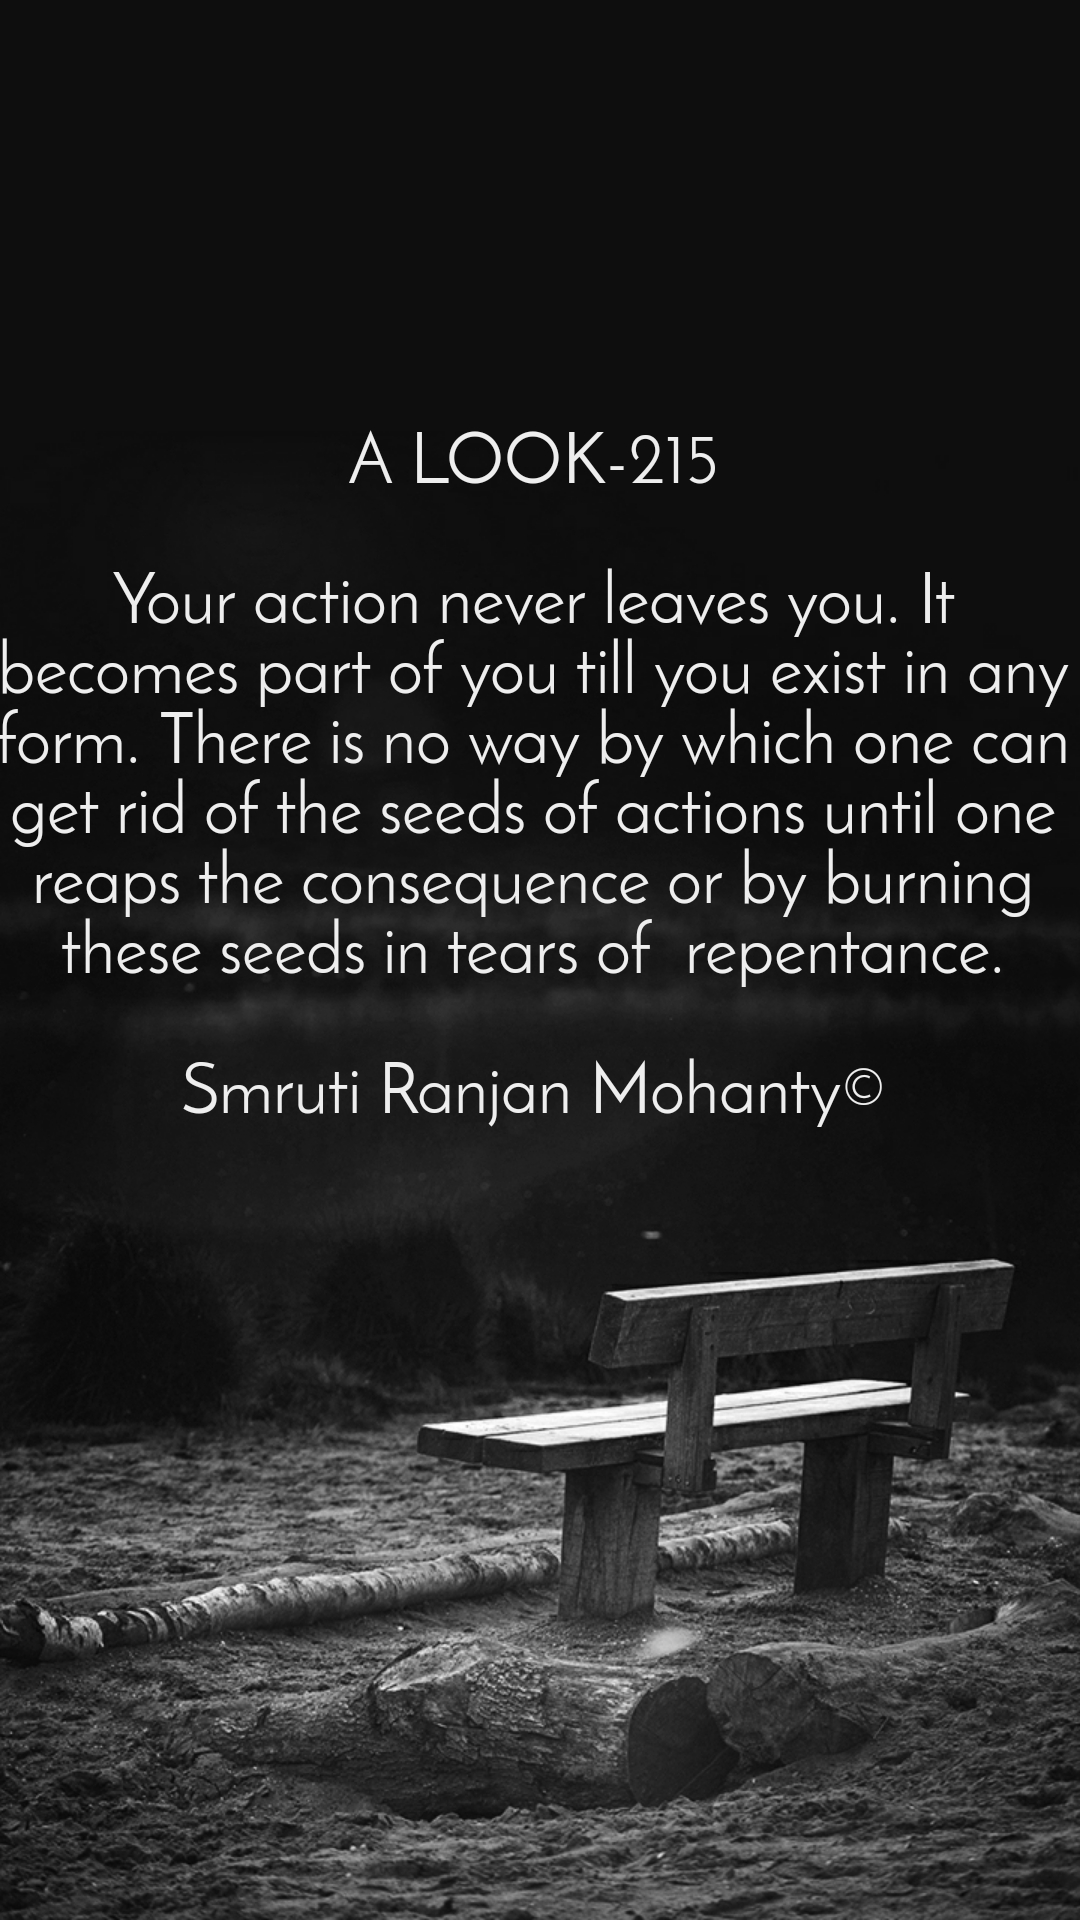 A LOOK-215  Your action never leaves you. It becomes part of you till you exist in any form. There is no way by which one can get rid of the seeds of actions until one reaps the consequence or by burning these seeds in tears of  repentance.  Smruti Ranjan Mohanty©